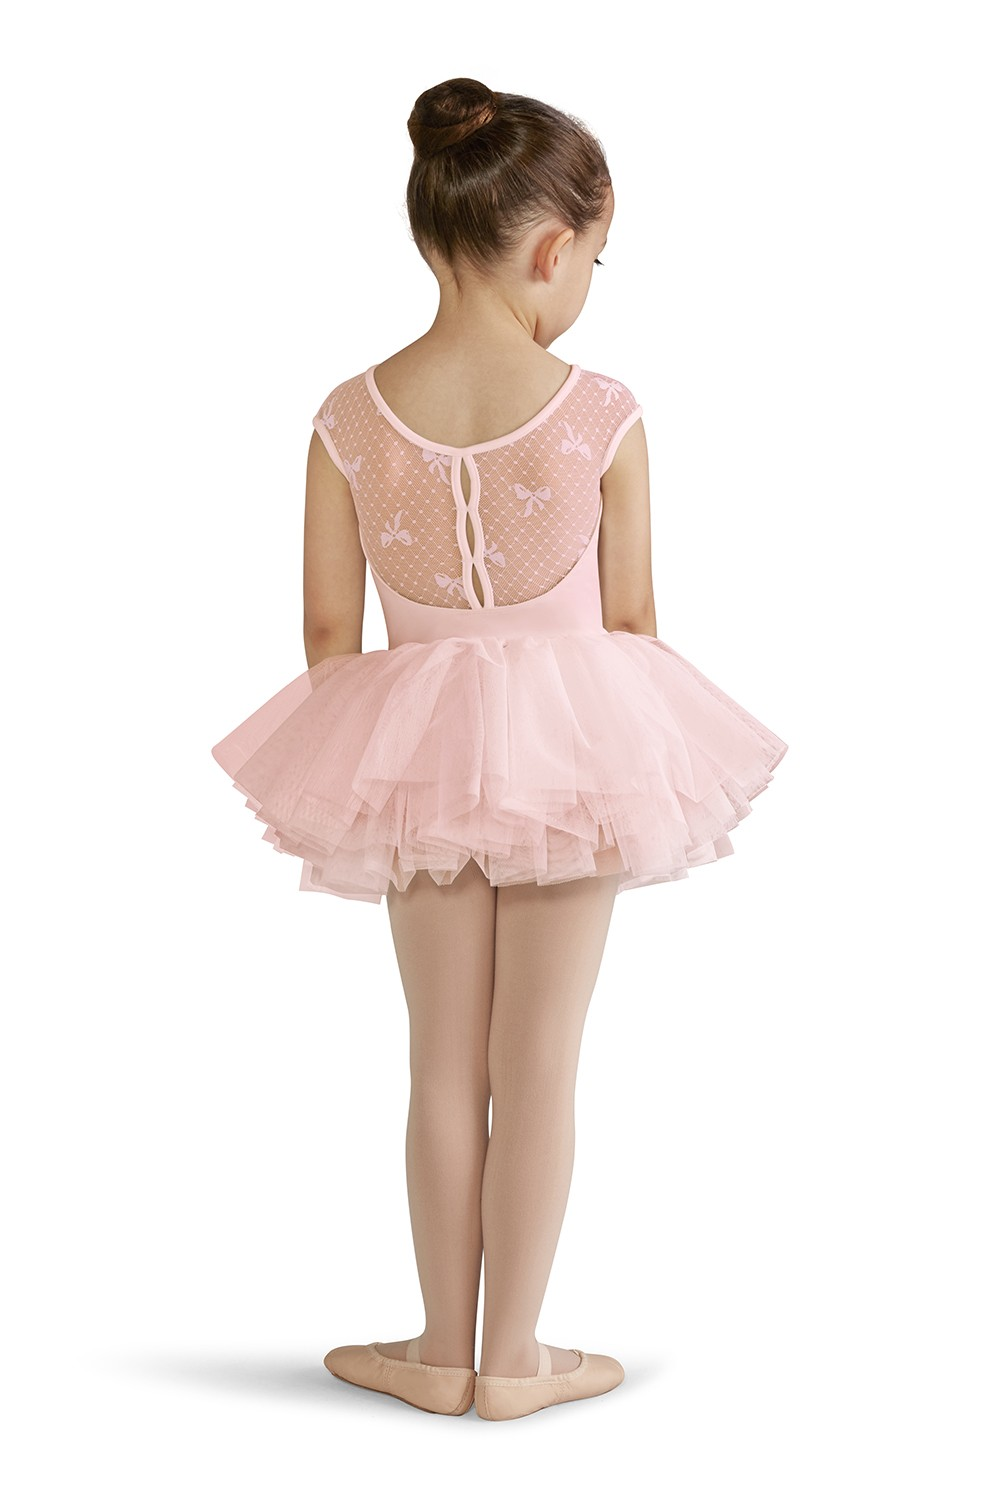 Elenore Children's Dance Leotards